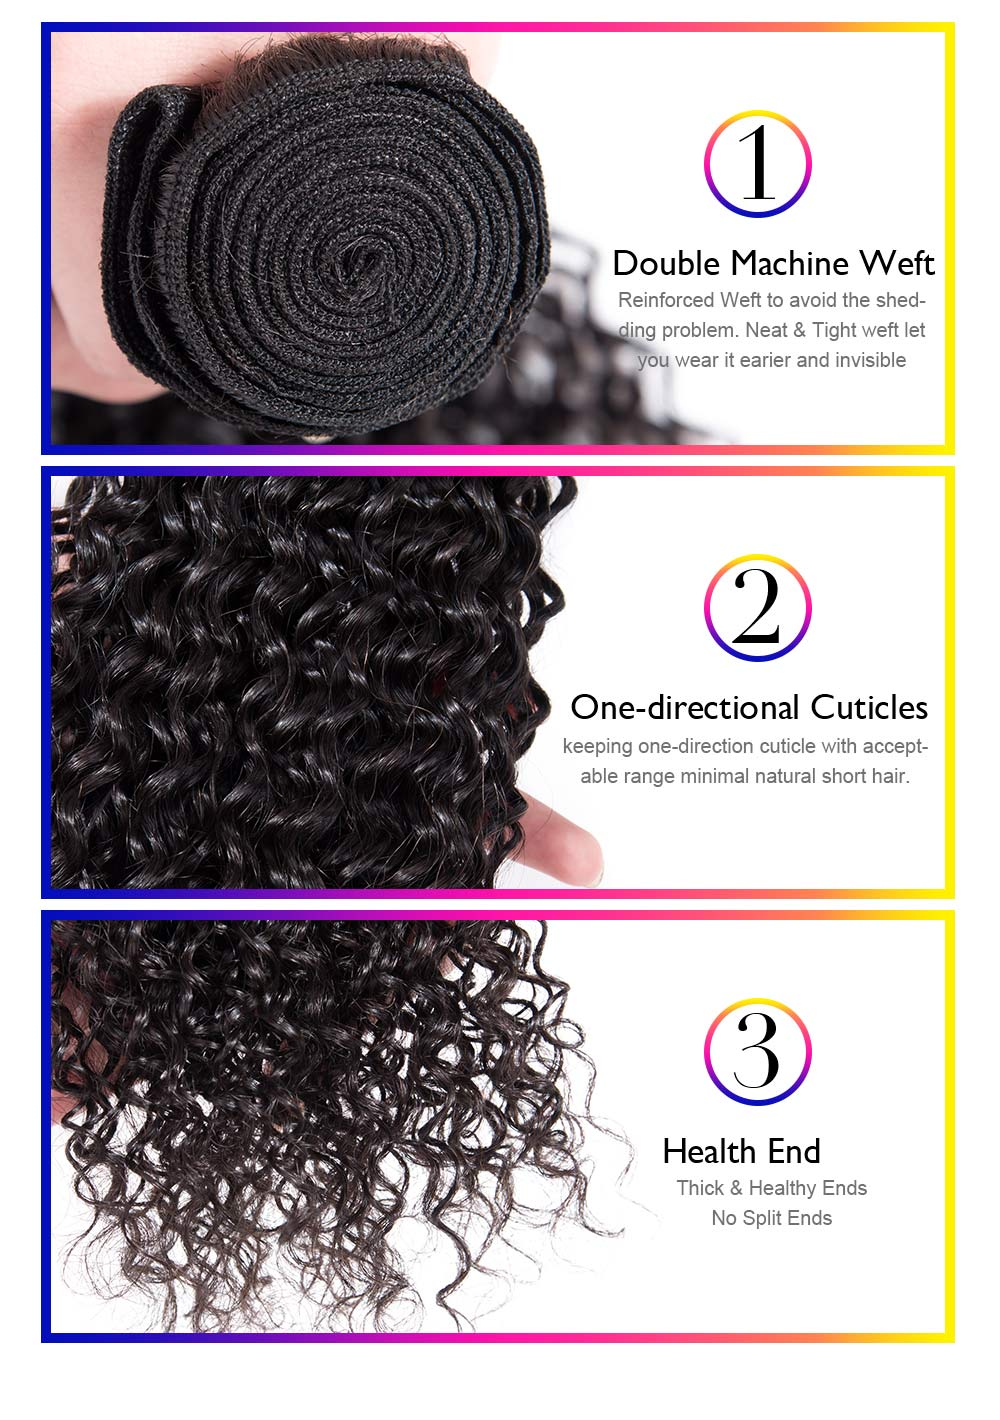 Buy Originea Peruvian Hair 13x4 Lace Closure With 3 Bundles Kinky Curly Hair Peruvian Human Hair Bundles With Closure